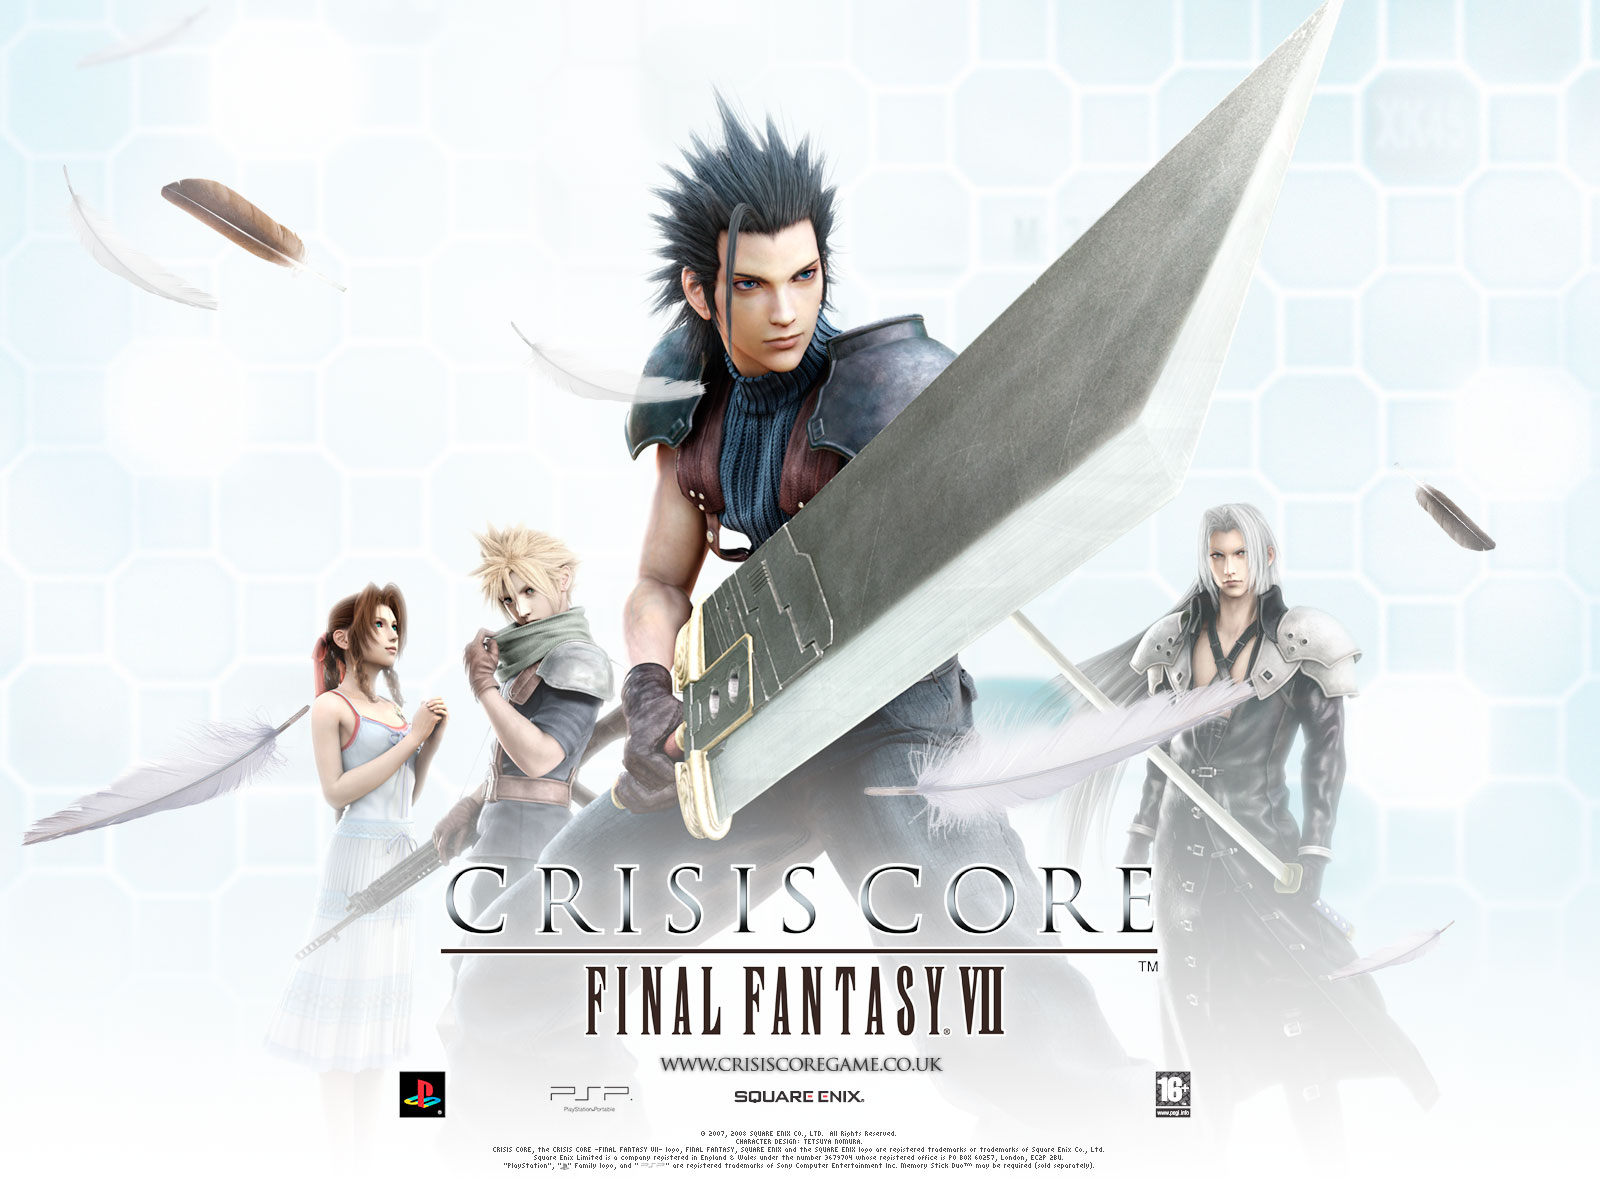 Images final fantasy final fantasy vii crisis core games altavistaventures Gallery